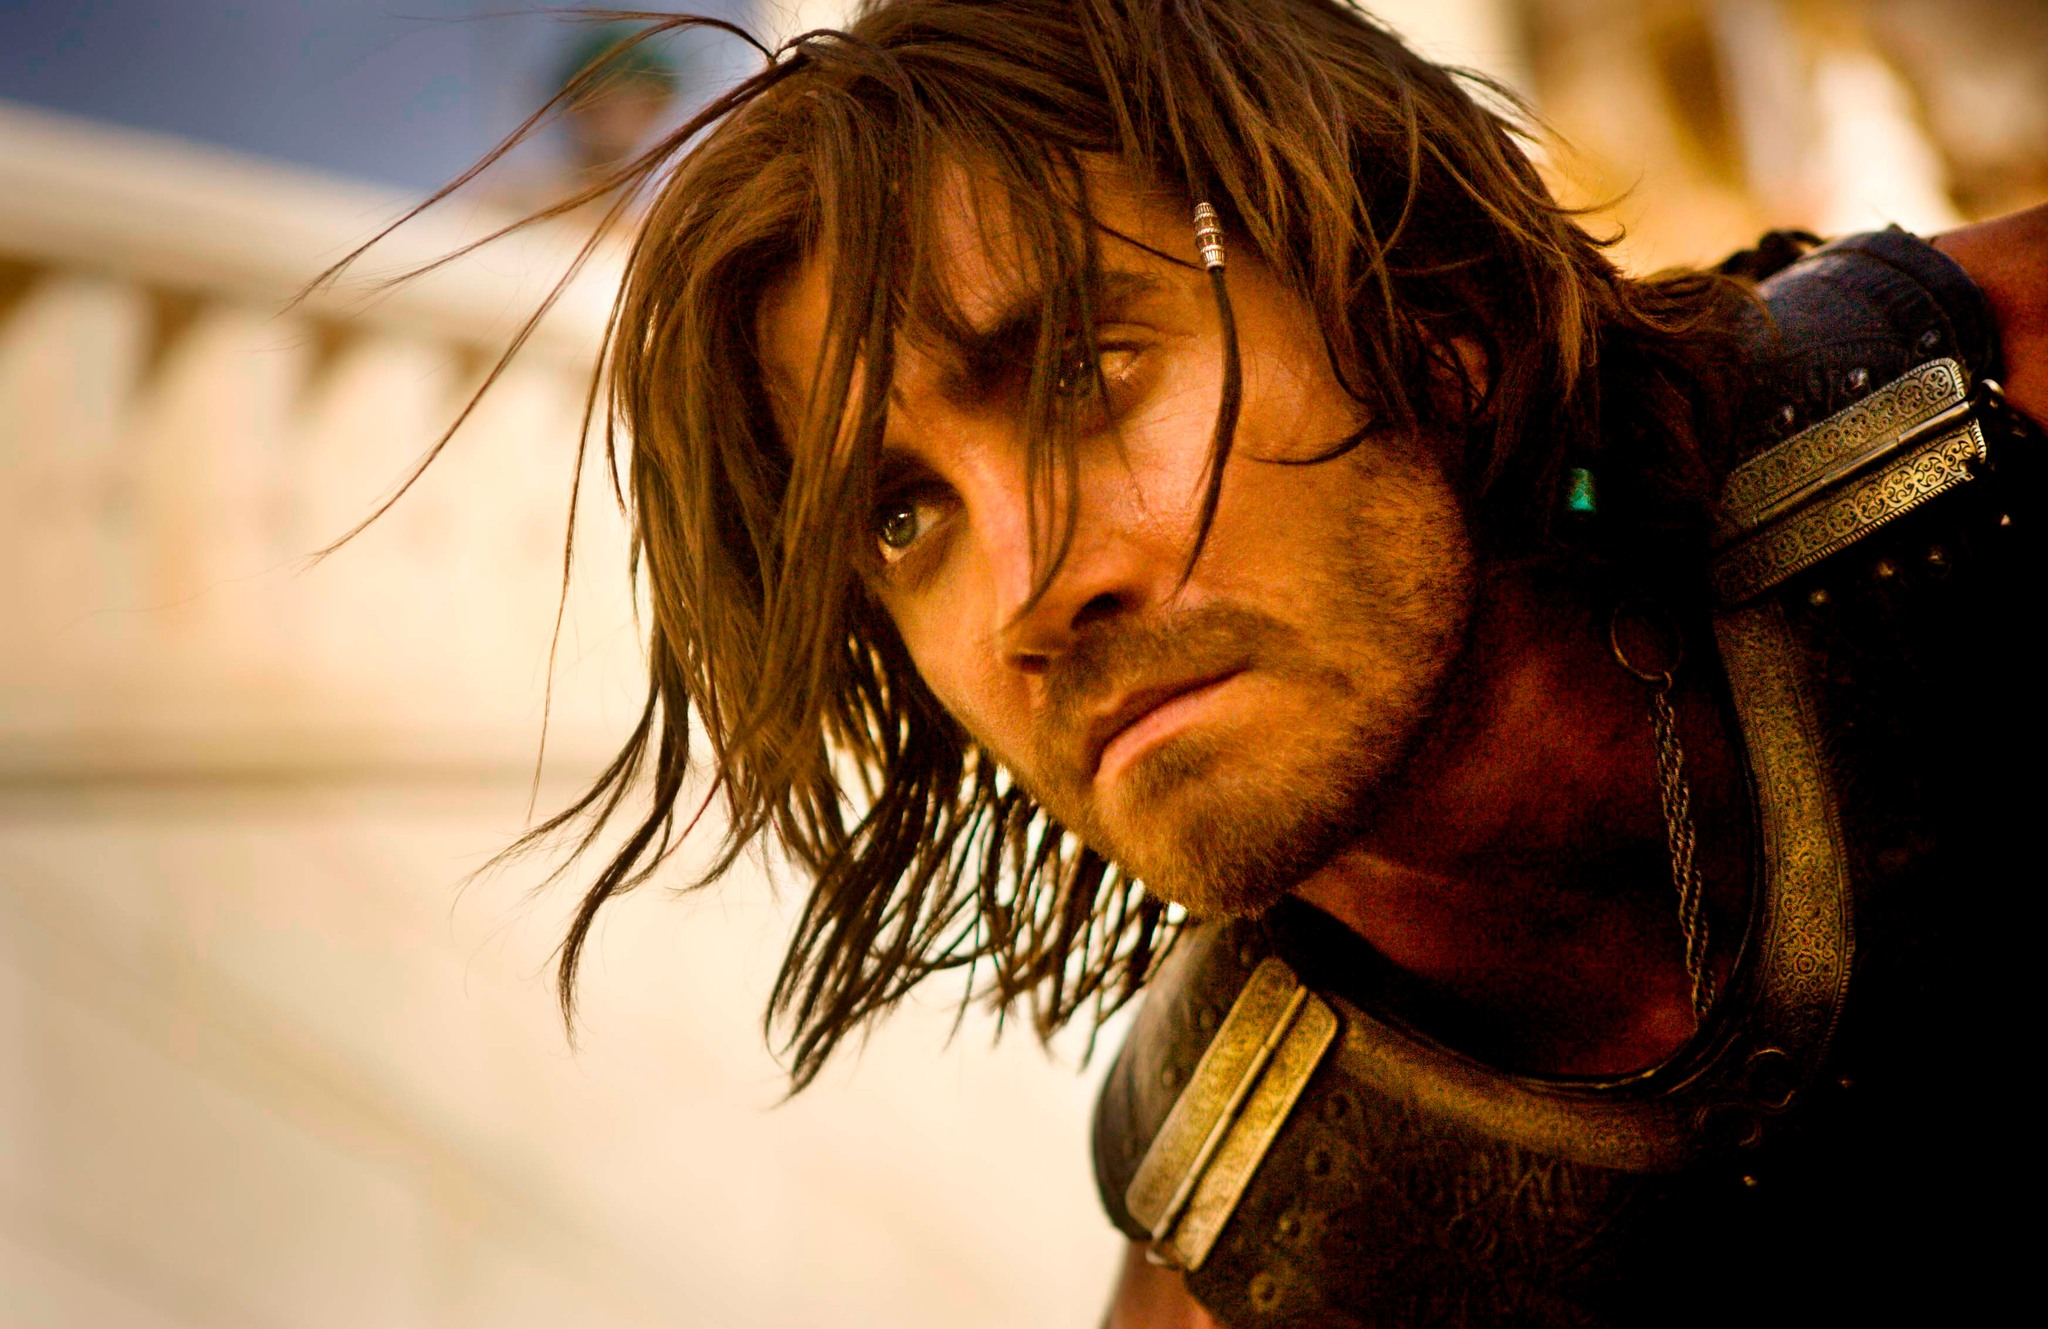 New Prince of Persia: The Sands of Time Images | Gryphon Prince Of Persia Jake Gyllenhaal Hair